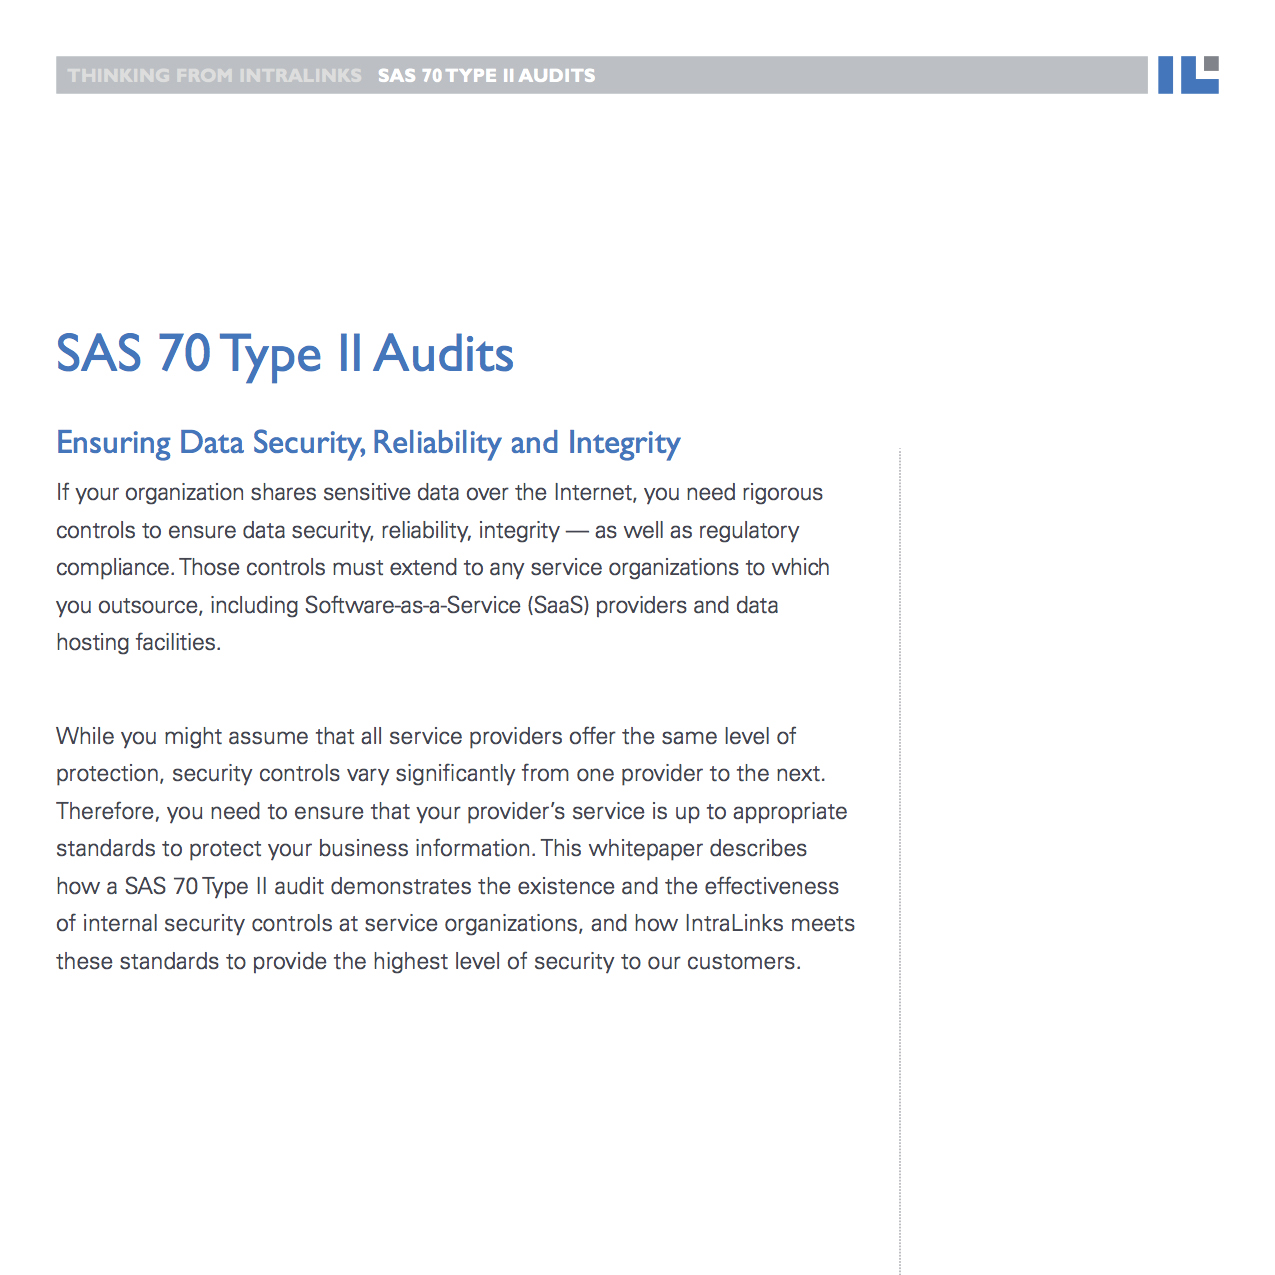 Intralinks white paper: SAS 70 Type II